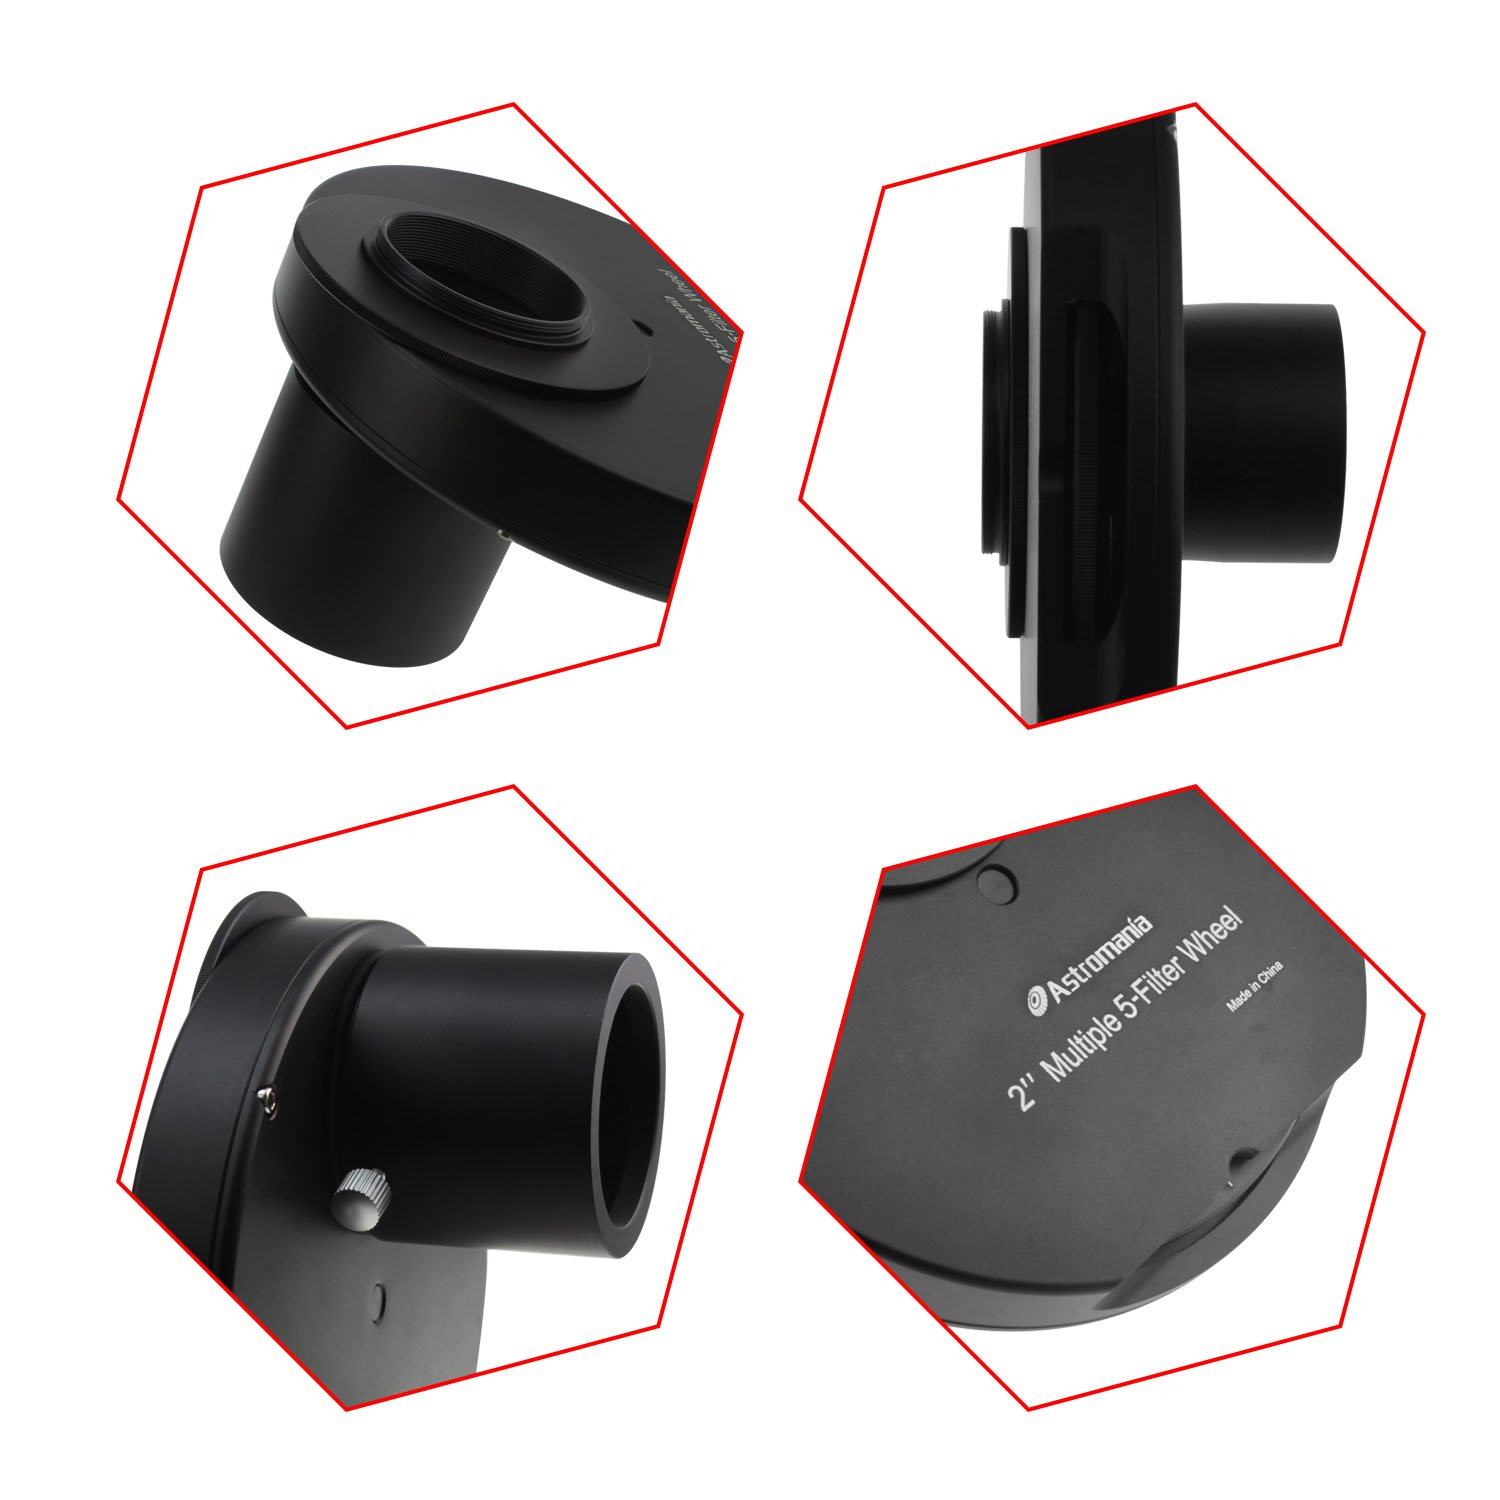 Astromania 2'' Superior Quality Multiple 5-Position Filter Wheel For Telescope - allowing you to image without any reflections or stray light by Astromania (Image #4)